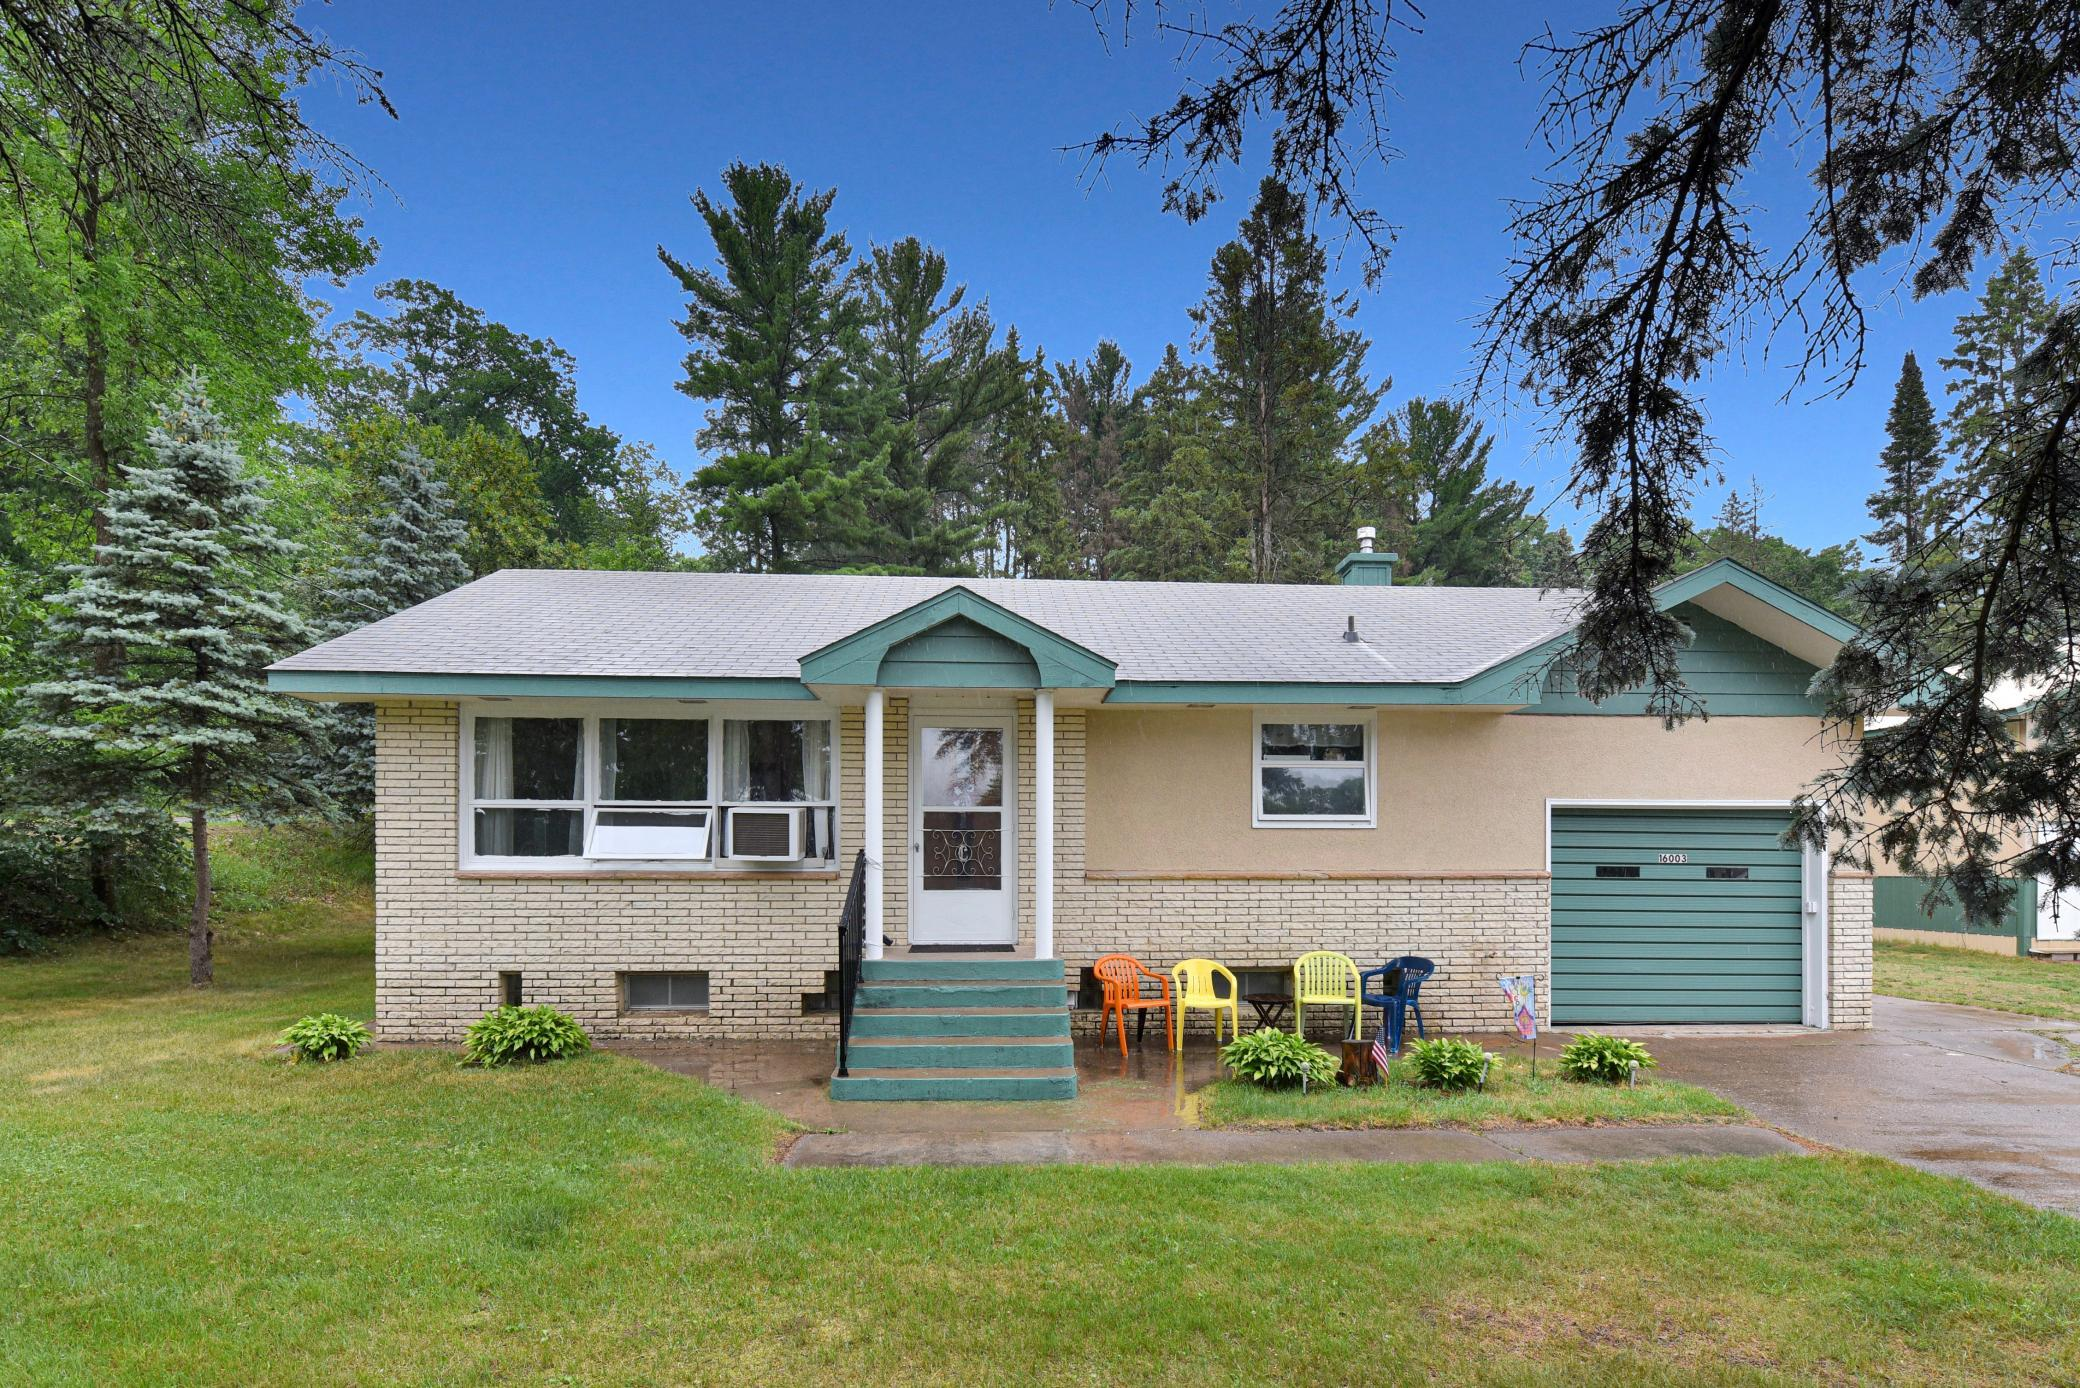 Must see Brainerd home and massive 40x80 pole building with views of Nokay Lake.  This charming ranch style home has been meticulously cared for and features 2 bedrooms, 2 baths, large windows, corner lot, full basement, tons of character and so much more!